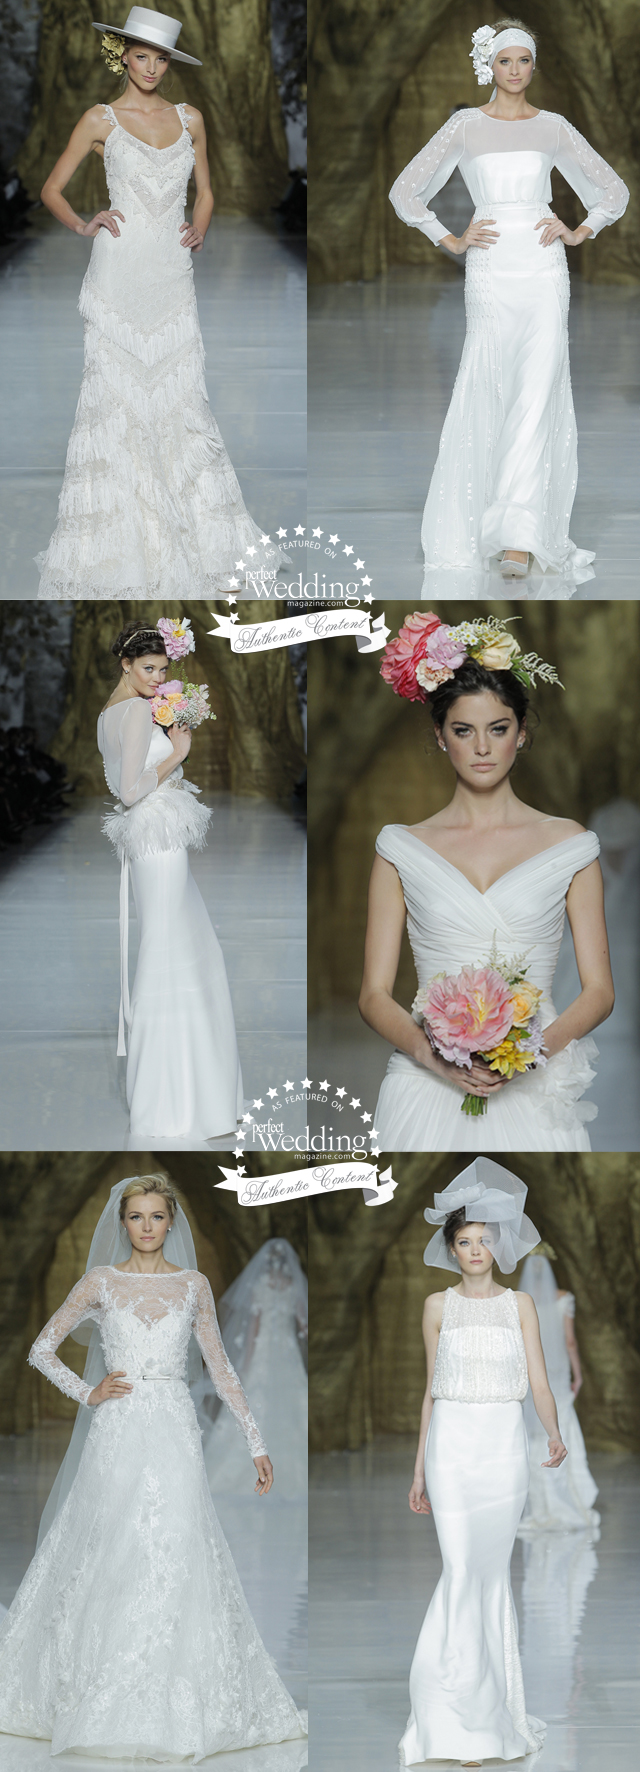 Pronovoas 2014 Collection in Barcelona, Perfect Wedding Magazine